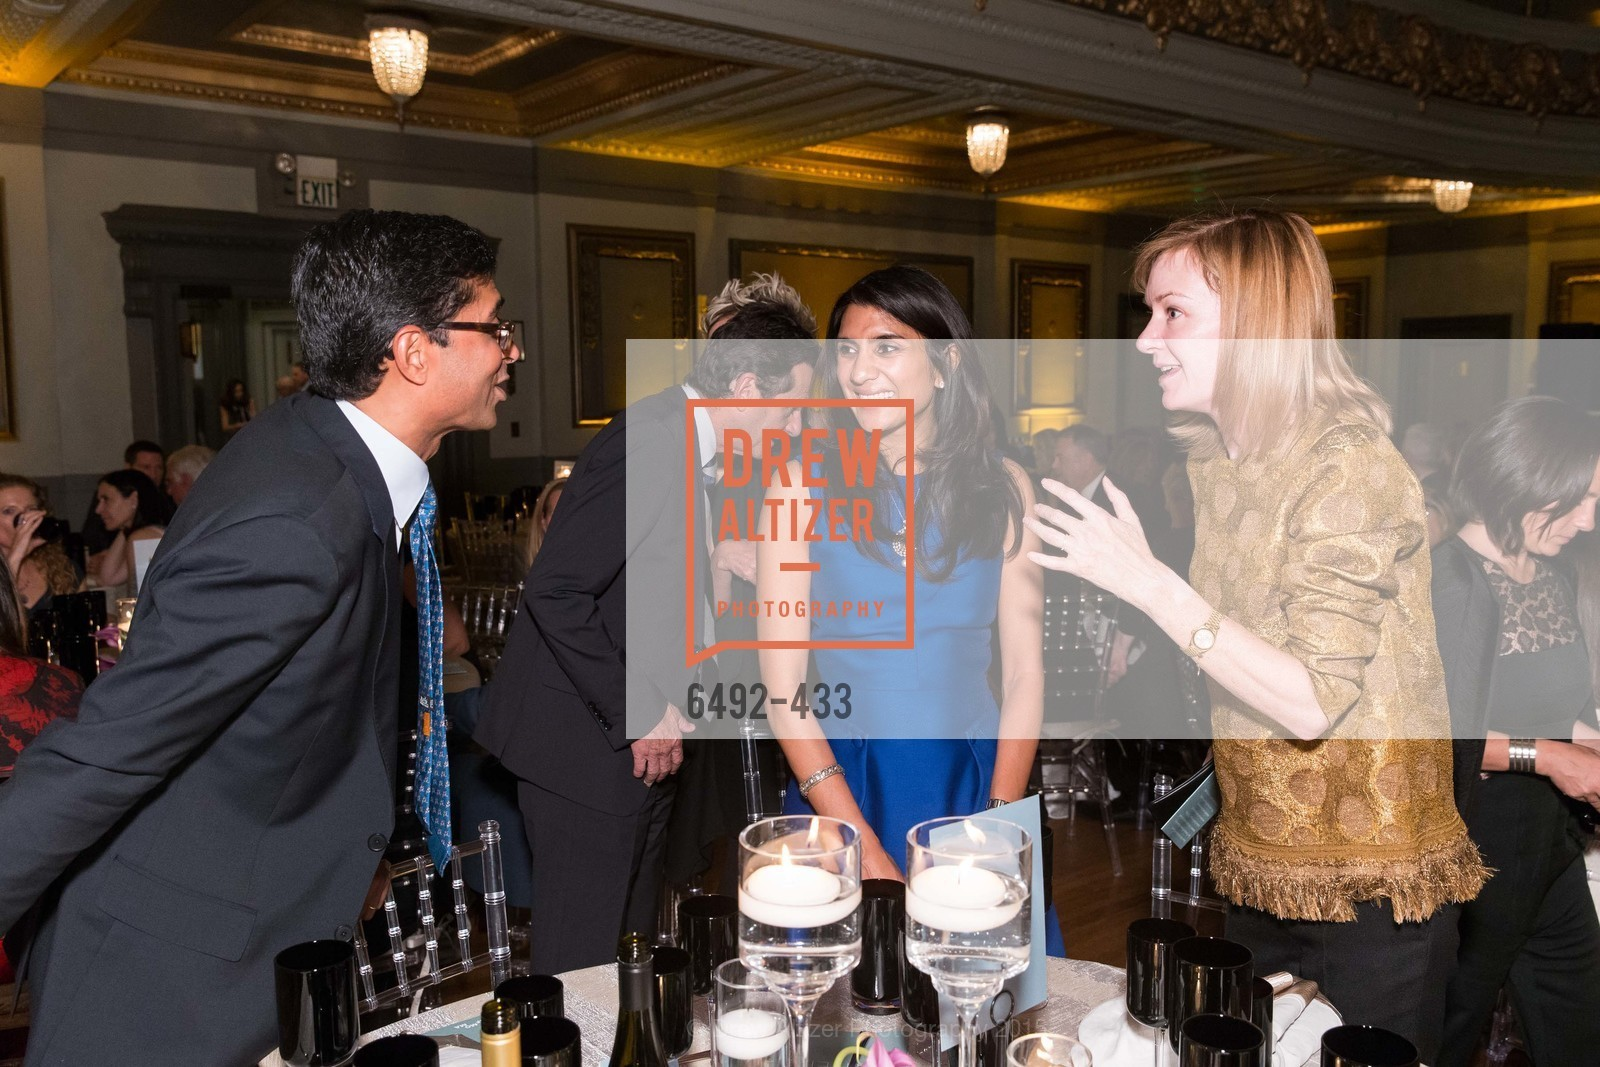 Ravin Agrawal, Alka Agrawal, Katie Paige, SFMOMA Contemporary Vision Award, Regency Ballroom. 1300 Van Ness, November 3rd, 2015,Drew Altizer, Drew Altizer Photography, full-service agency, private events, San Francisco photographer, photographer california